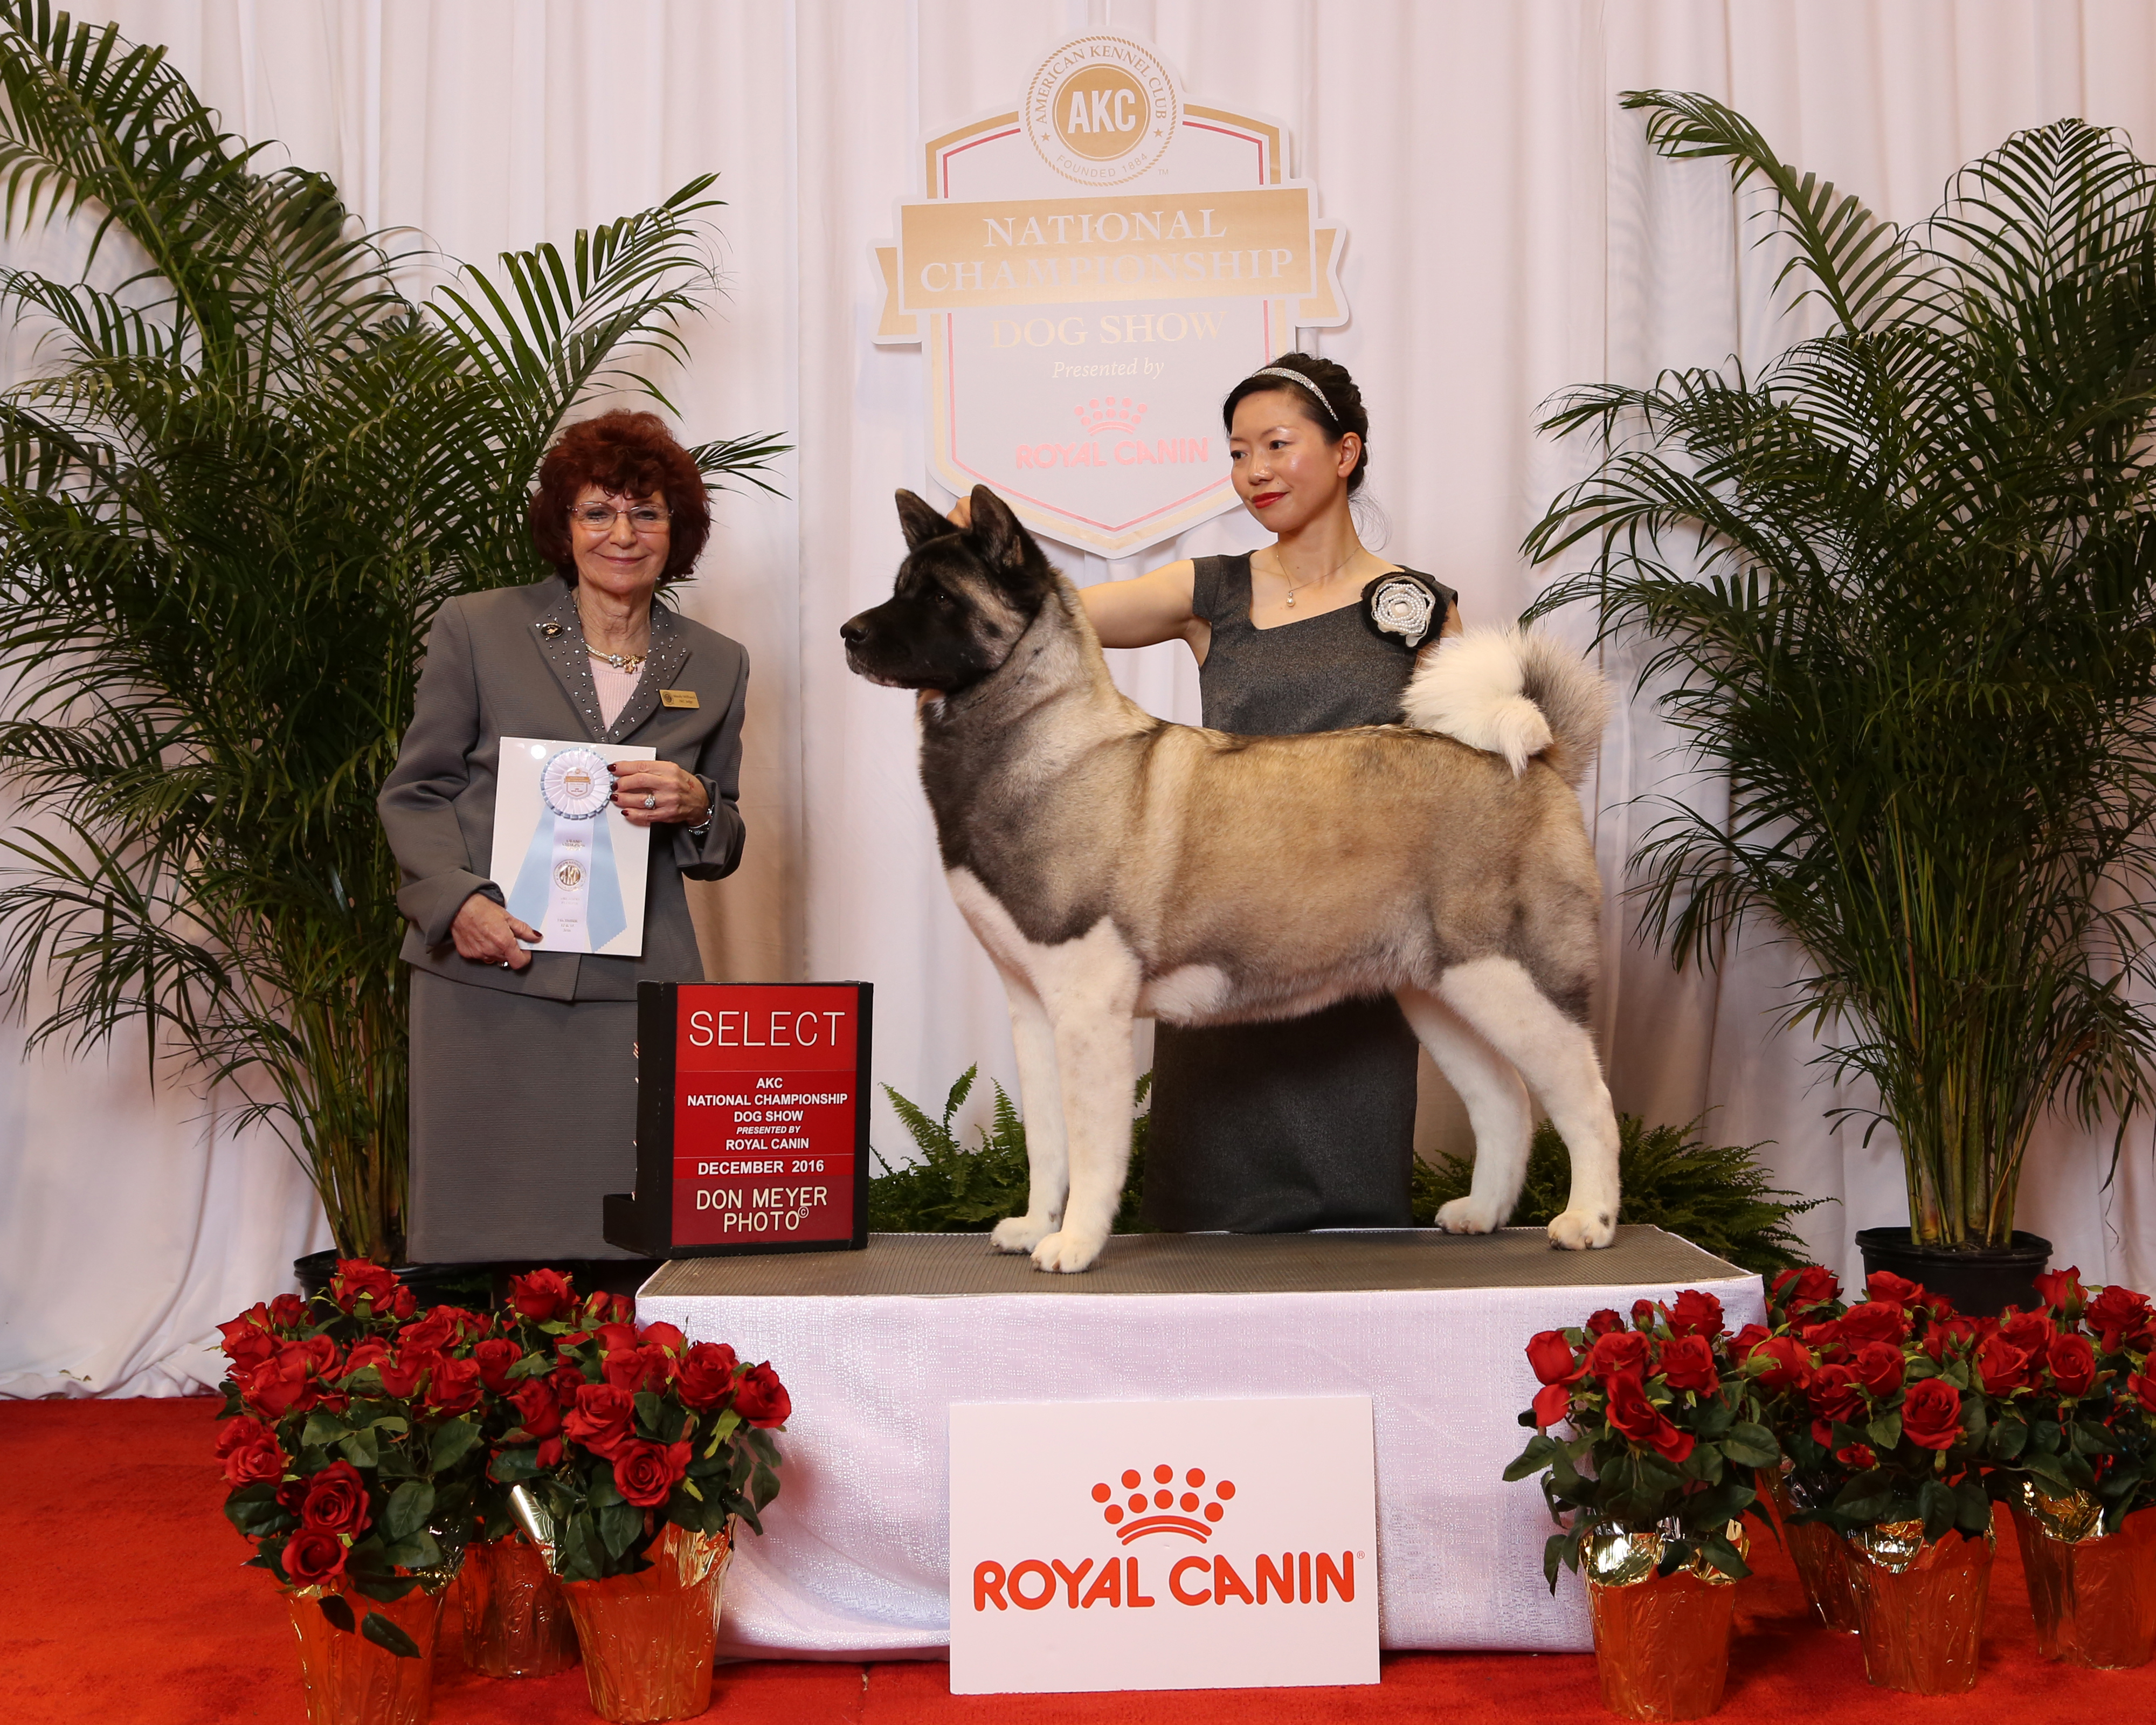 Dream SB @ AKC National Championship